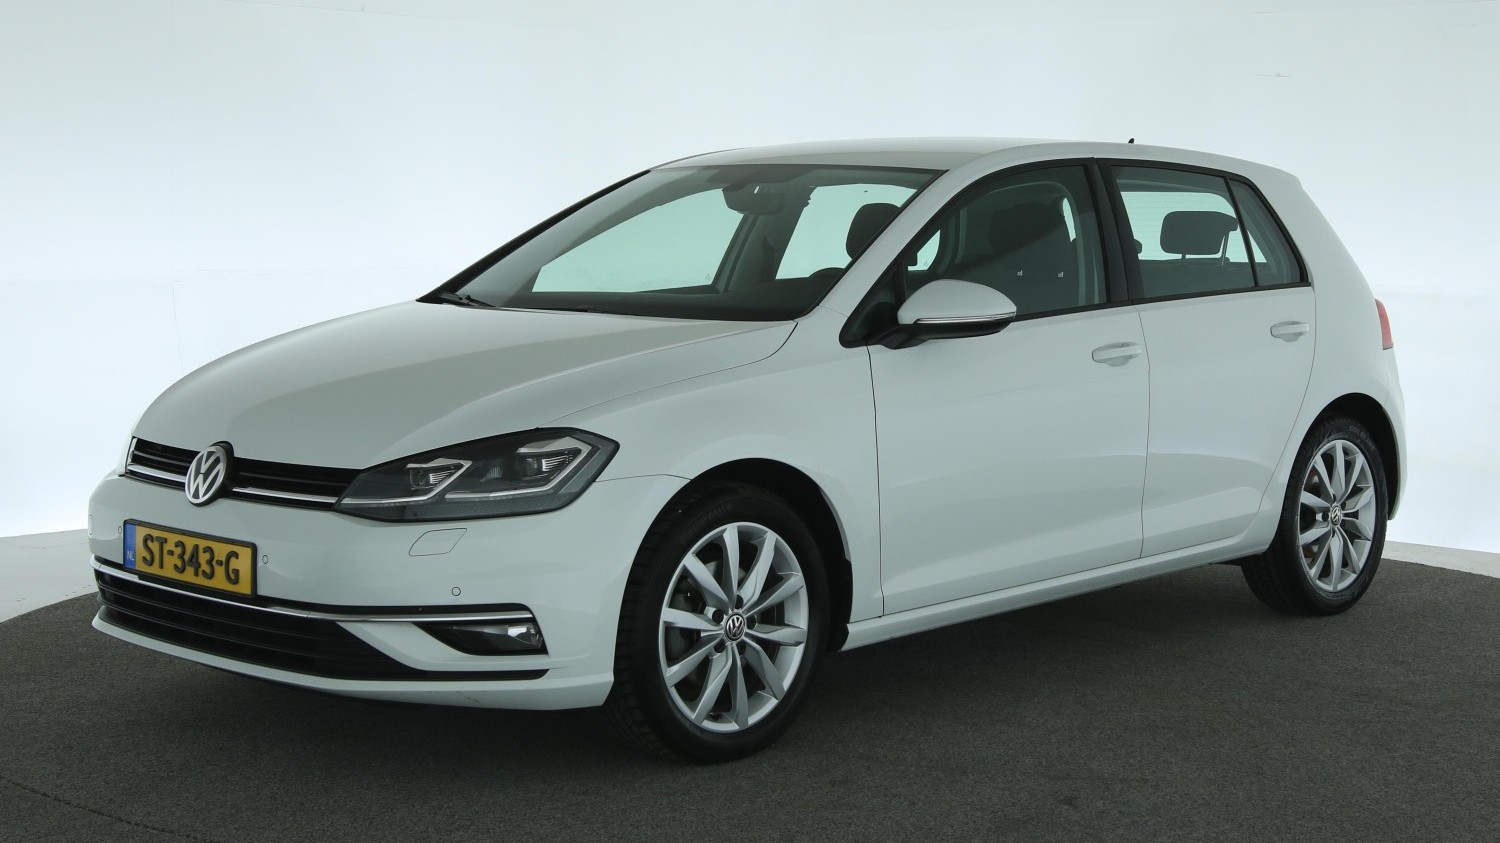 Volkswagen Golf Hatchback 2017 ST-343-G 1